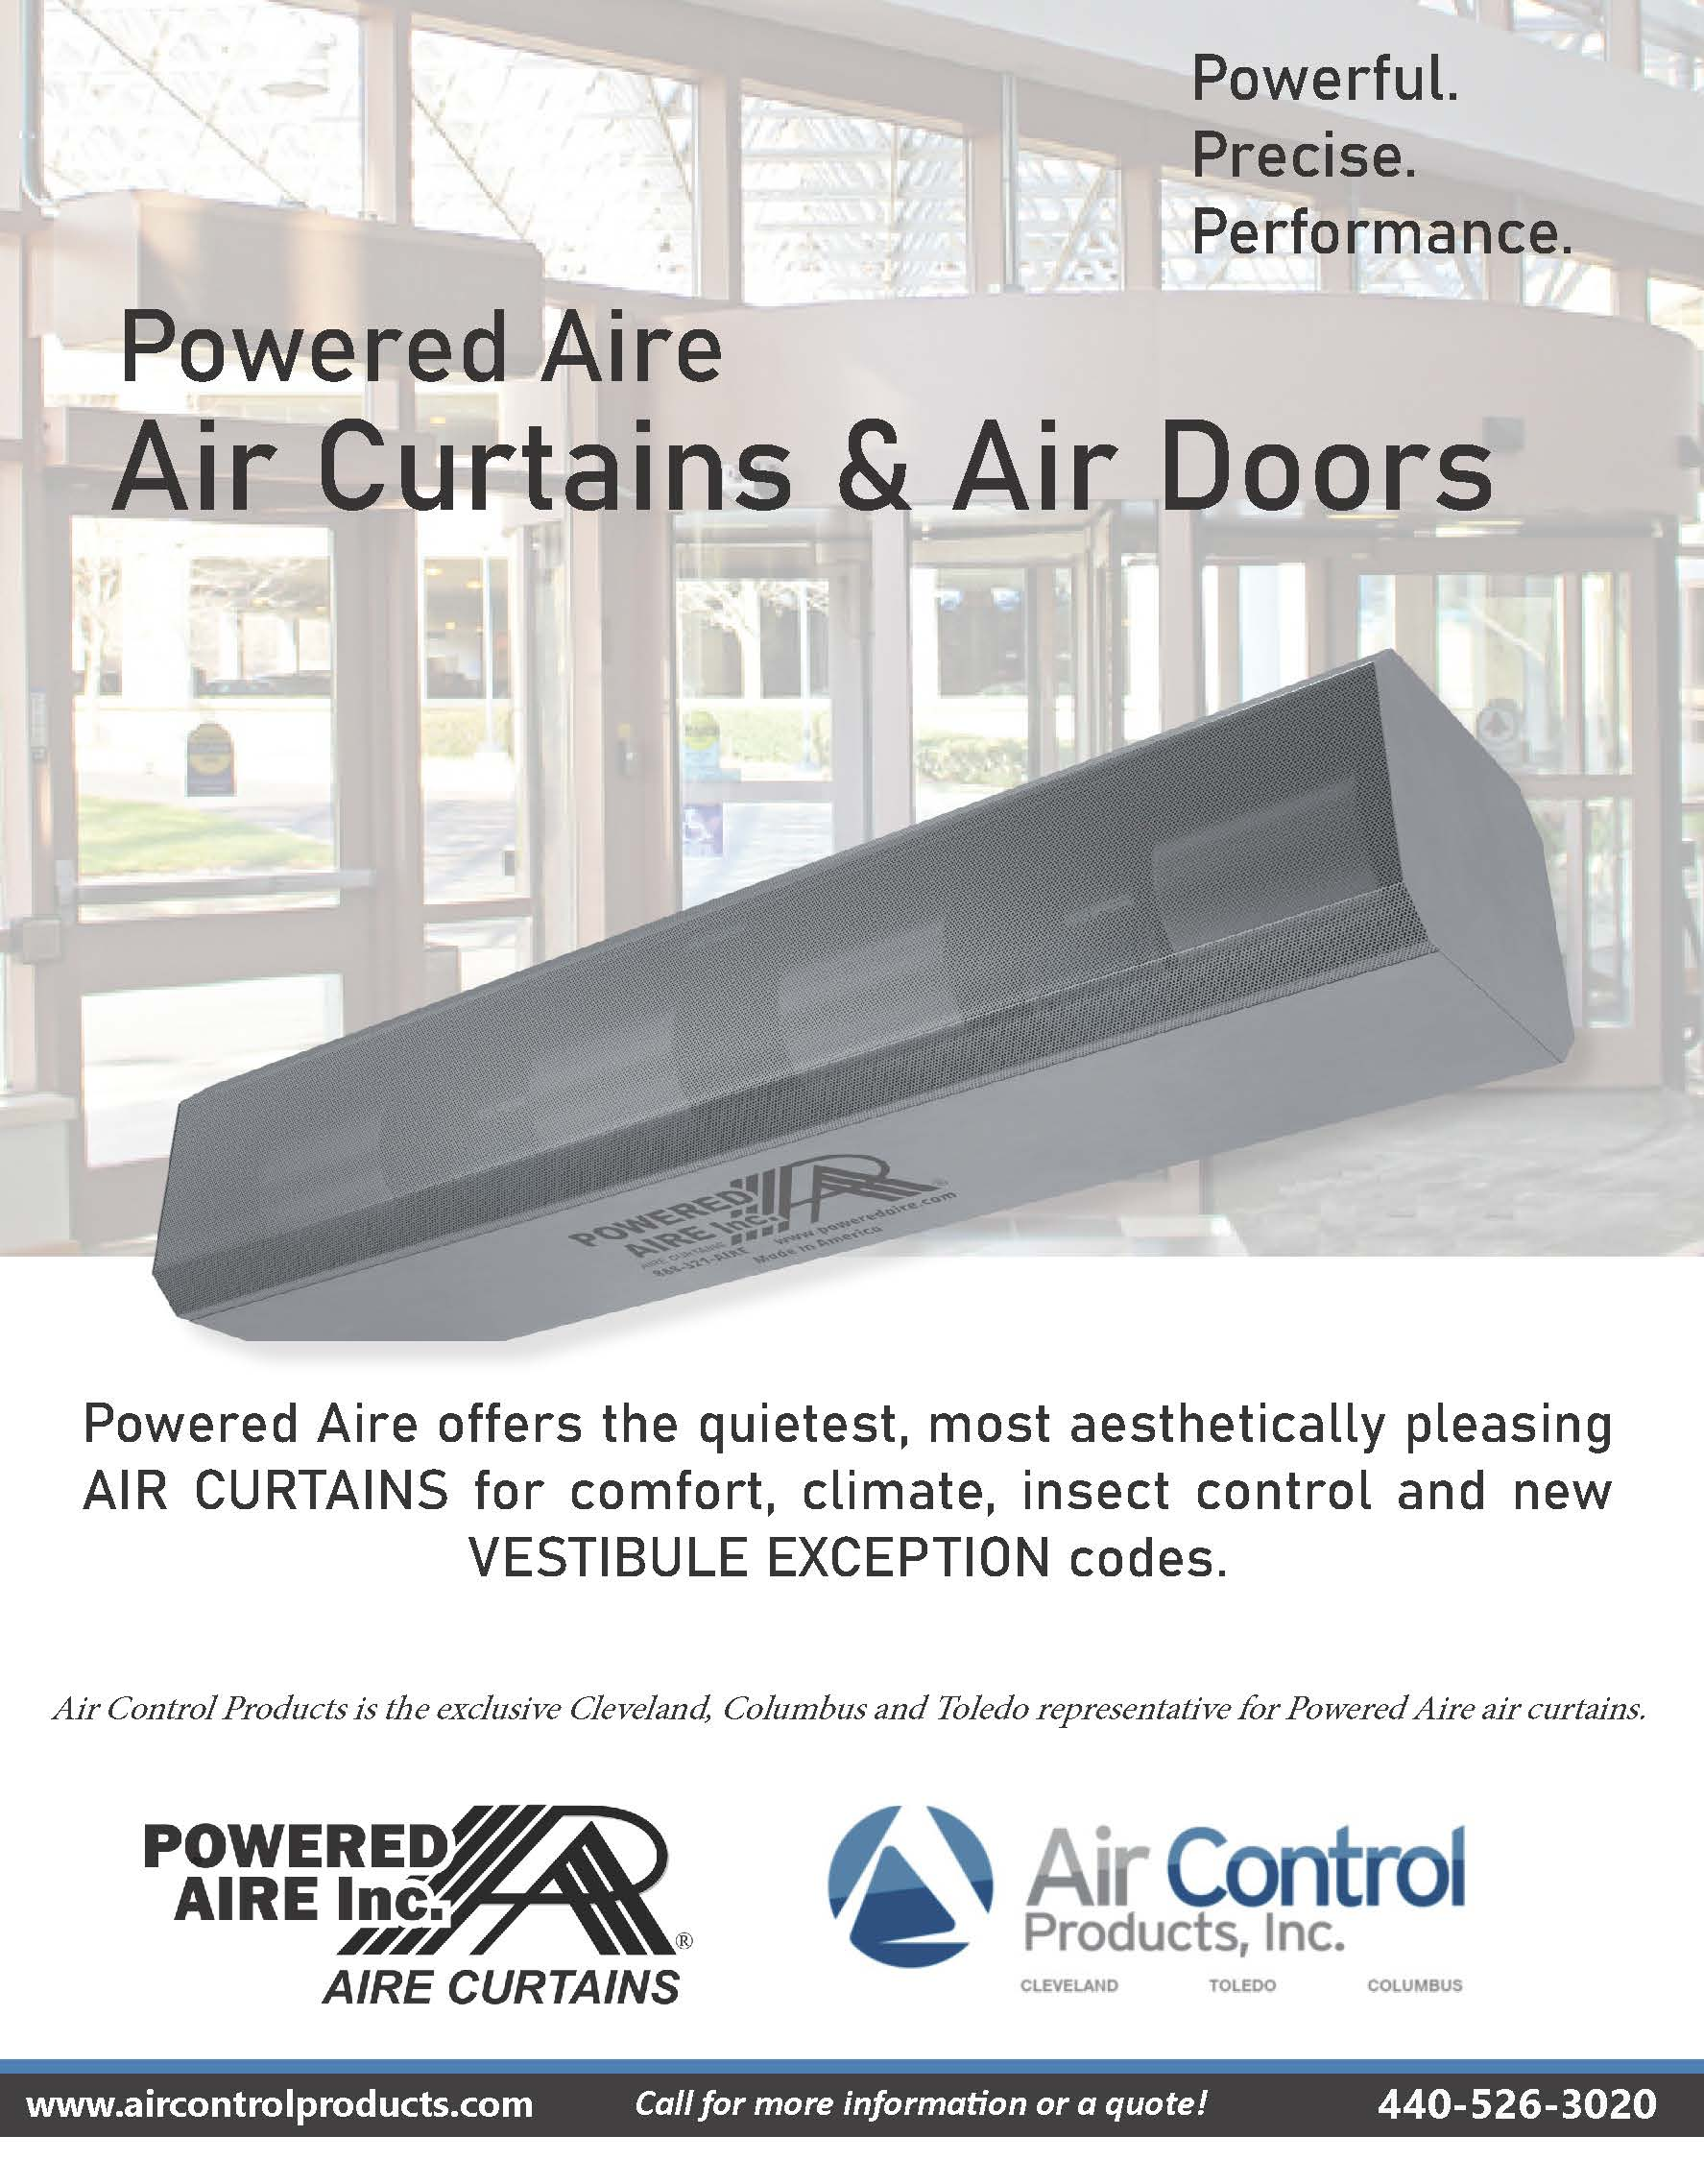 Powered Aire Air Curtains Featured in Properties Magazine